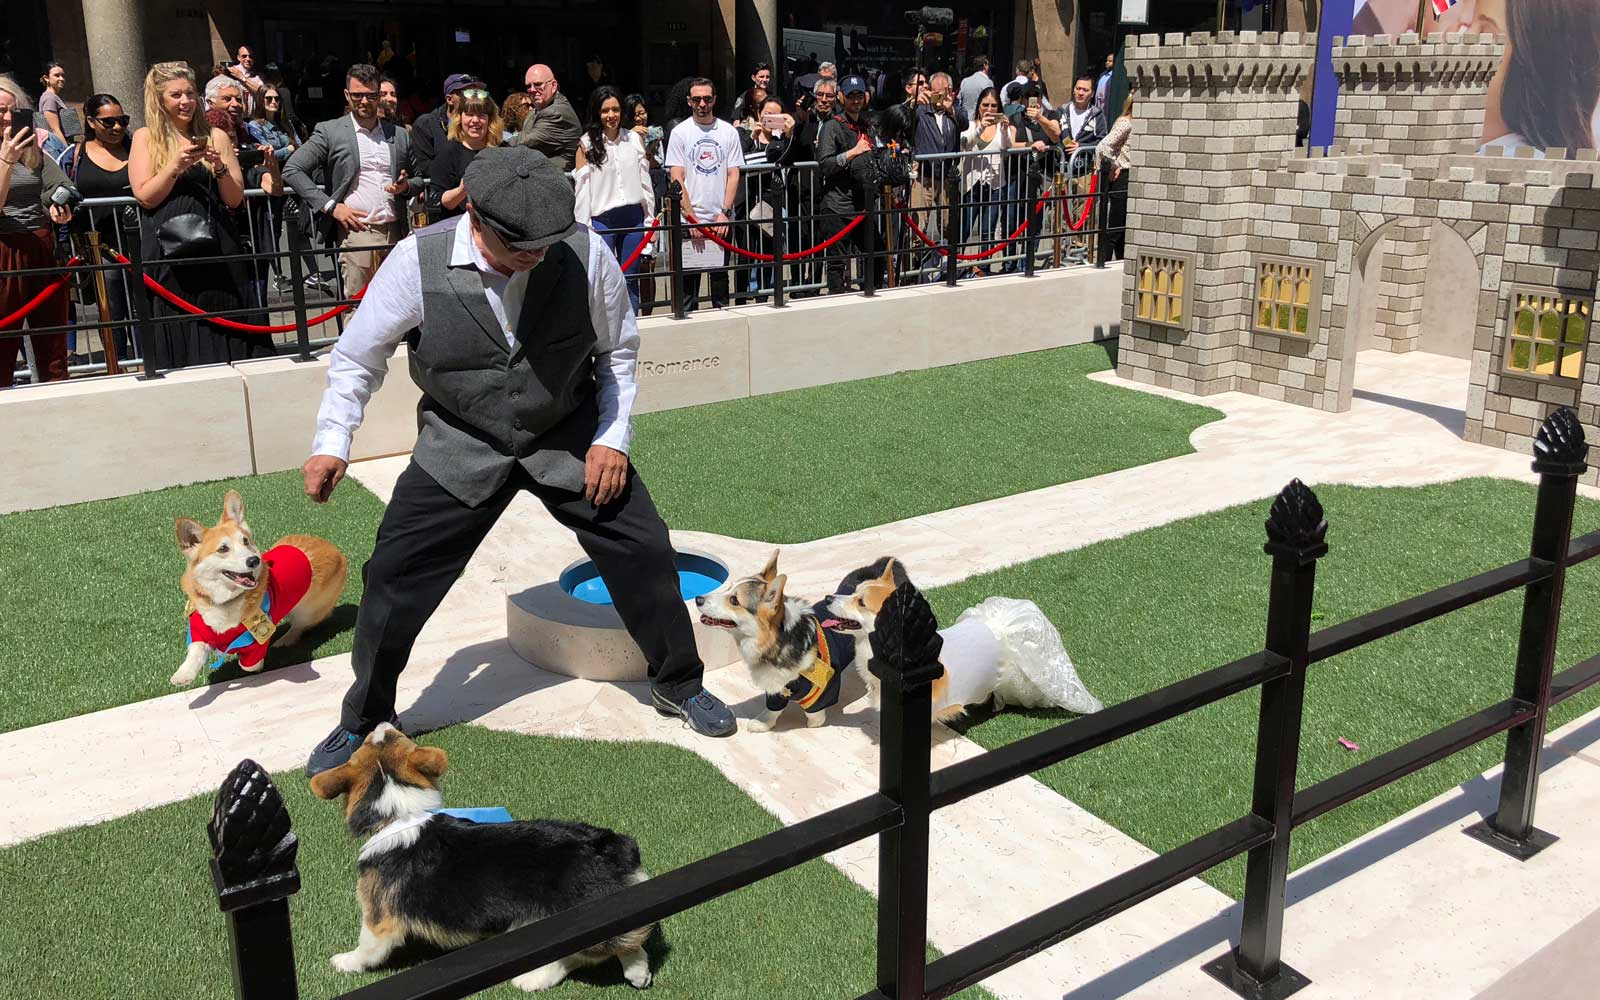 A trainer plays with the corgis in front of a palace playhouse.